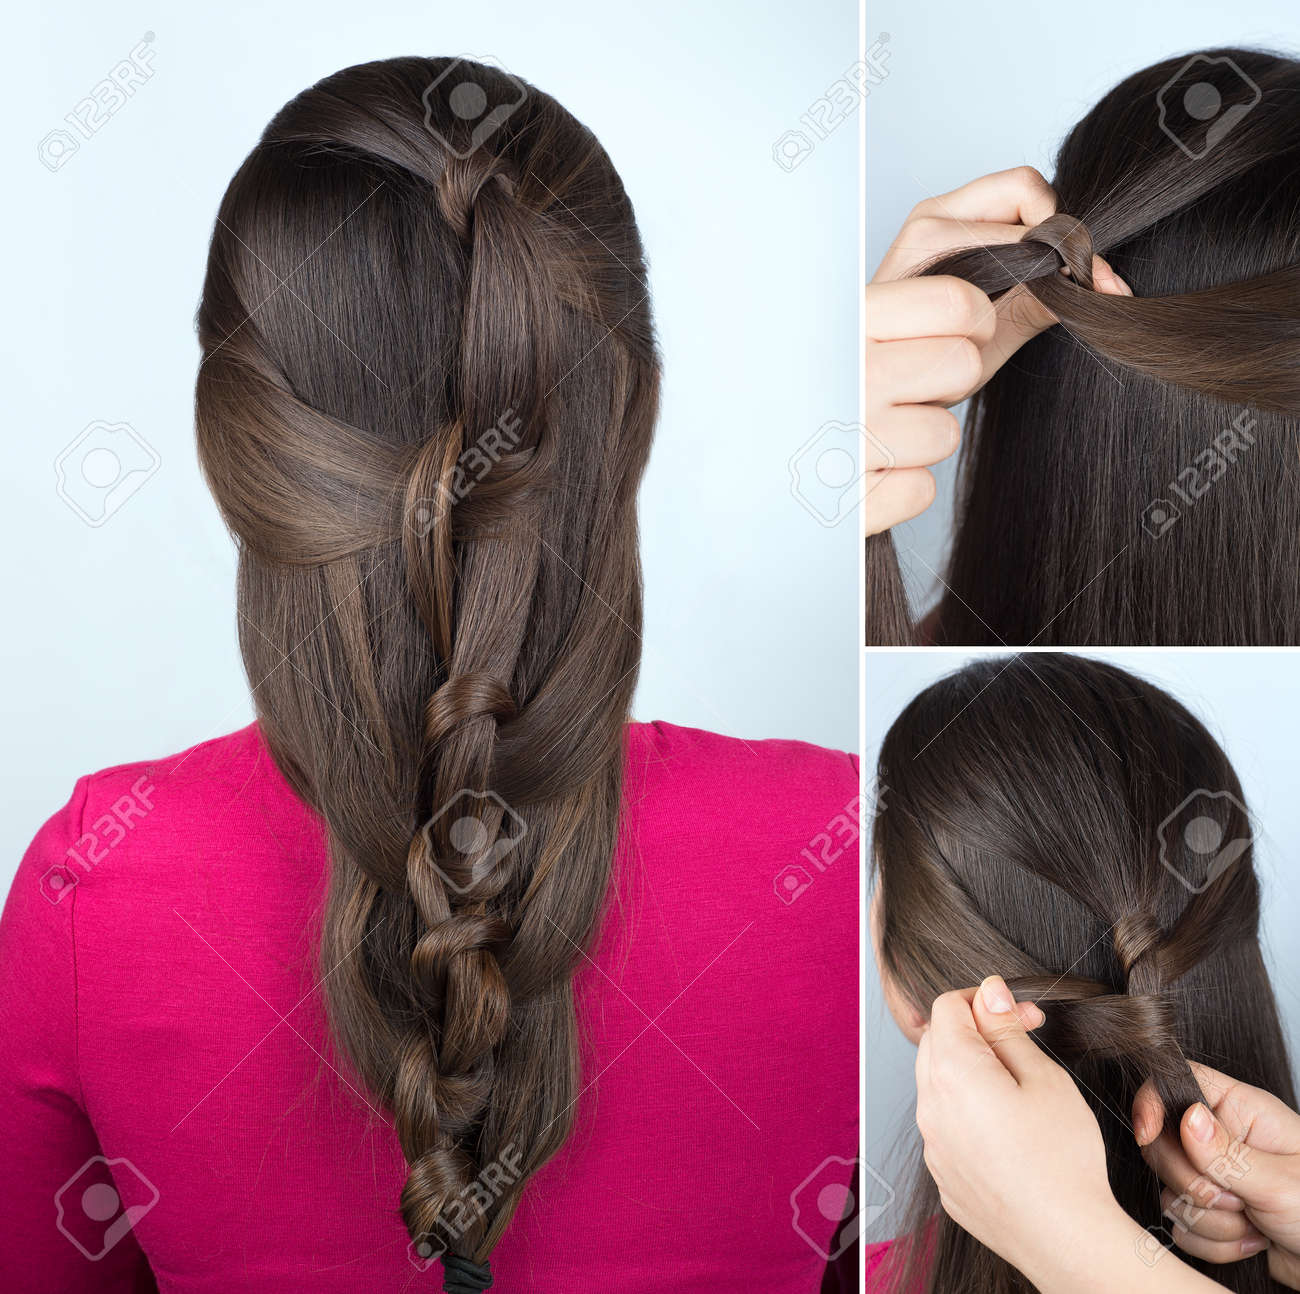 Simple Updos For Long Hair Step By Step